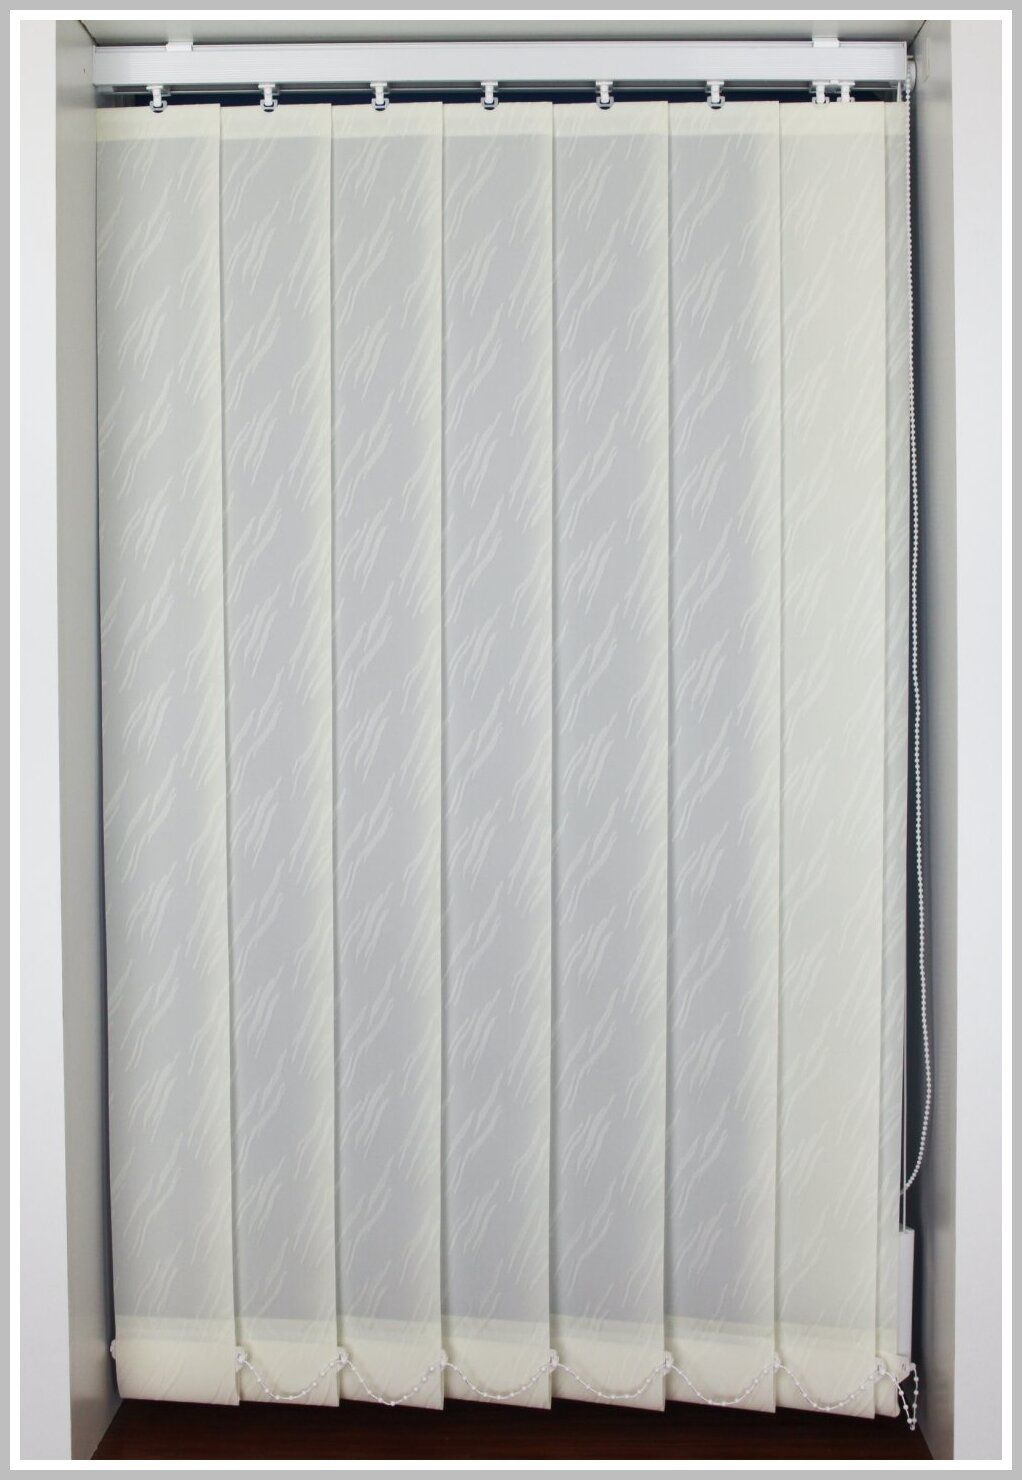 59 Reference Of Vertical Blind Slats Bunnings In 2020 Vertical Blinds Curtains Blinds Vertical Blind Slats